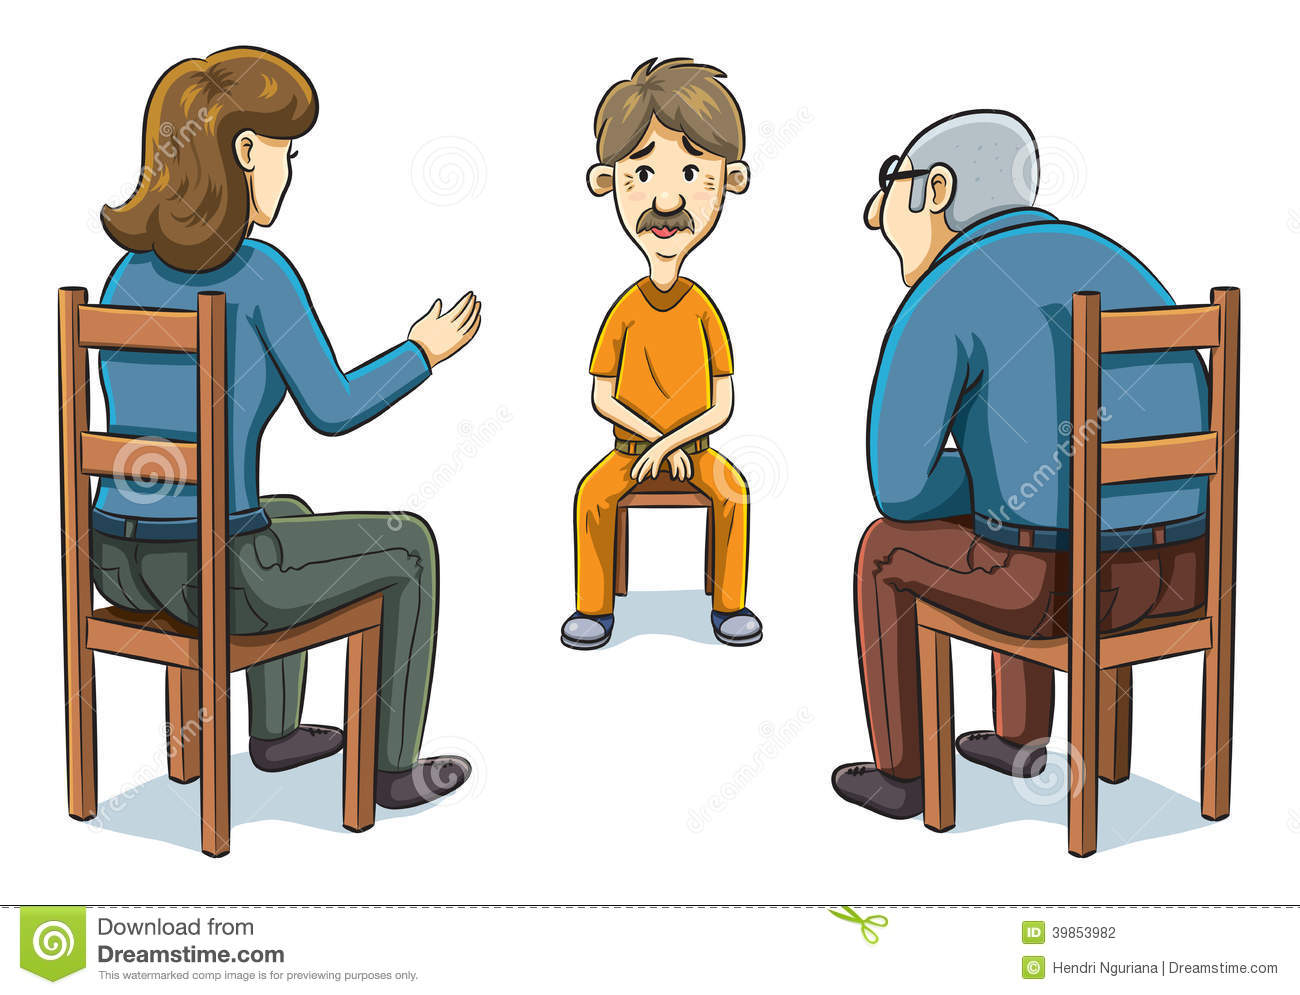 investigation-cartoon-illustration-police-doing-to-prisoner-39853982.jpg